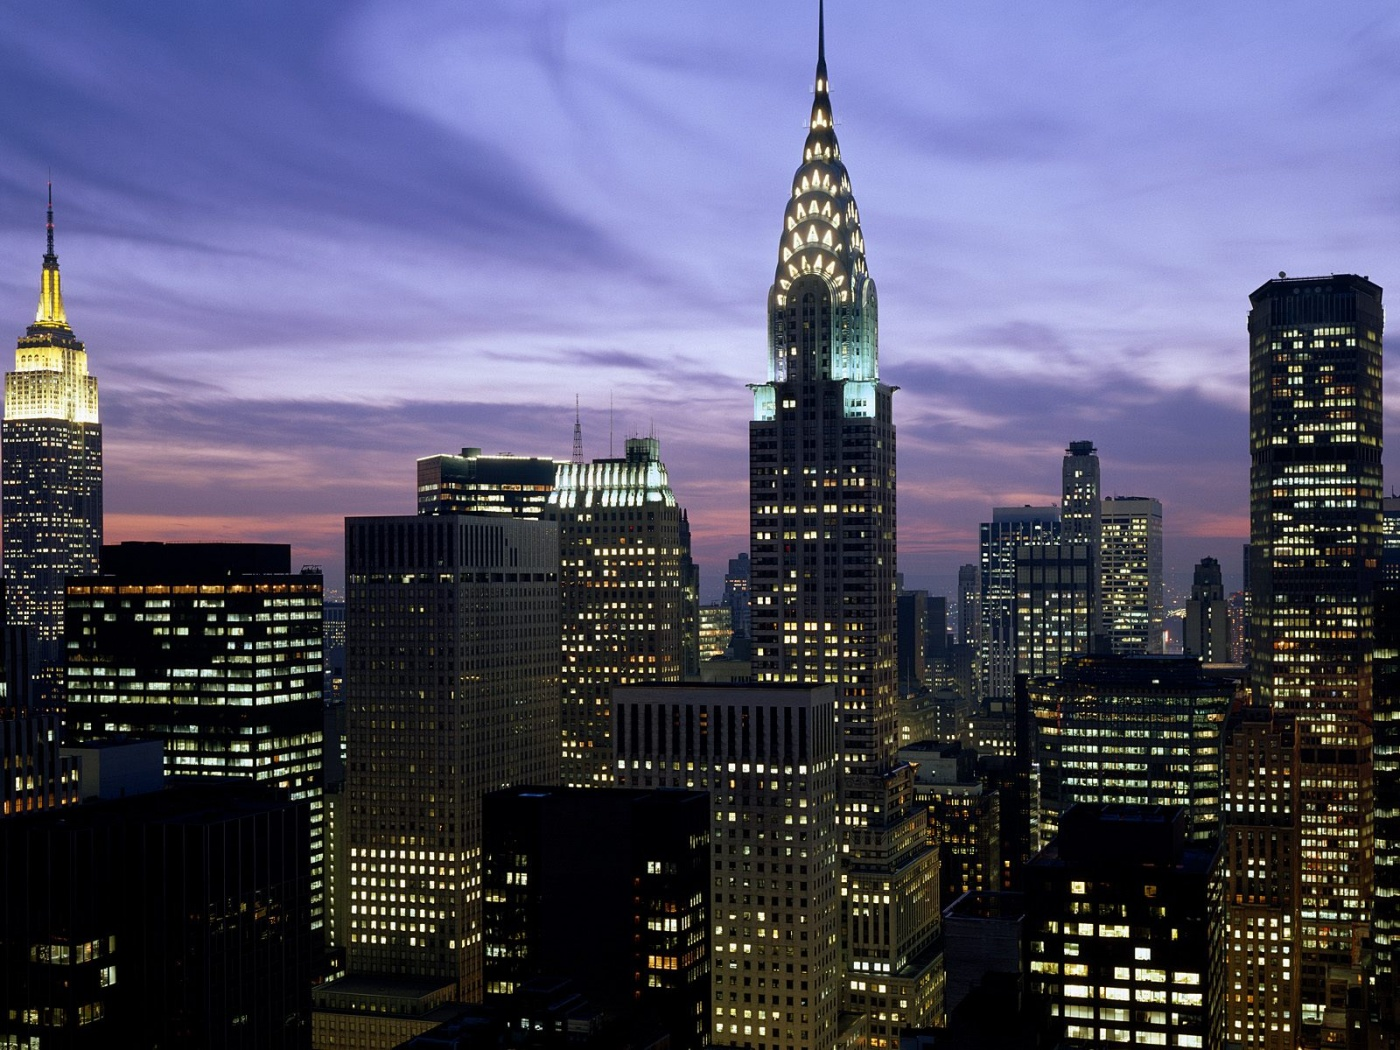 ... x 1200. Normal 5:4 resolutions: 1280 x 1024 Original Link. Download New York City Evening ...